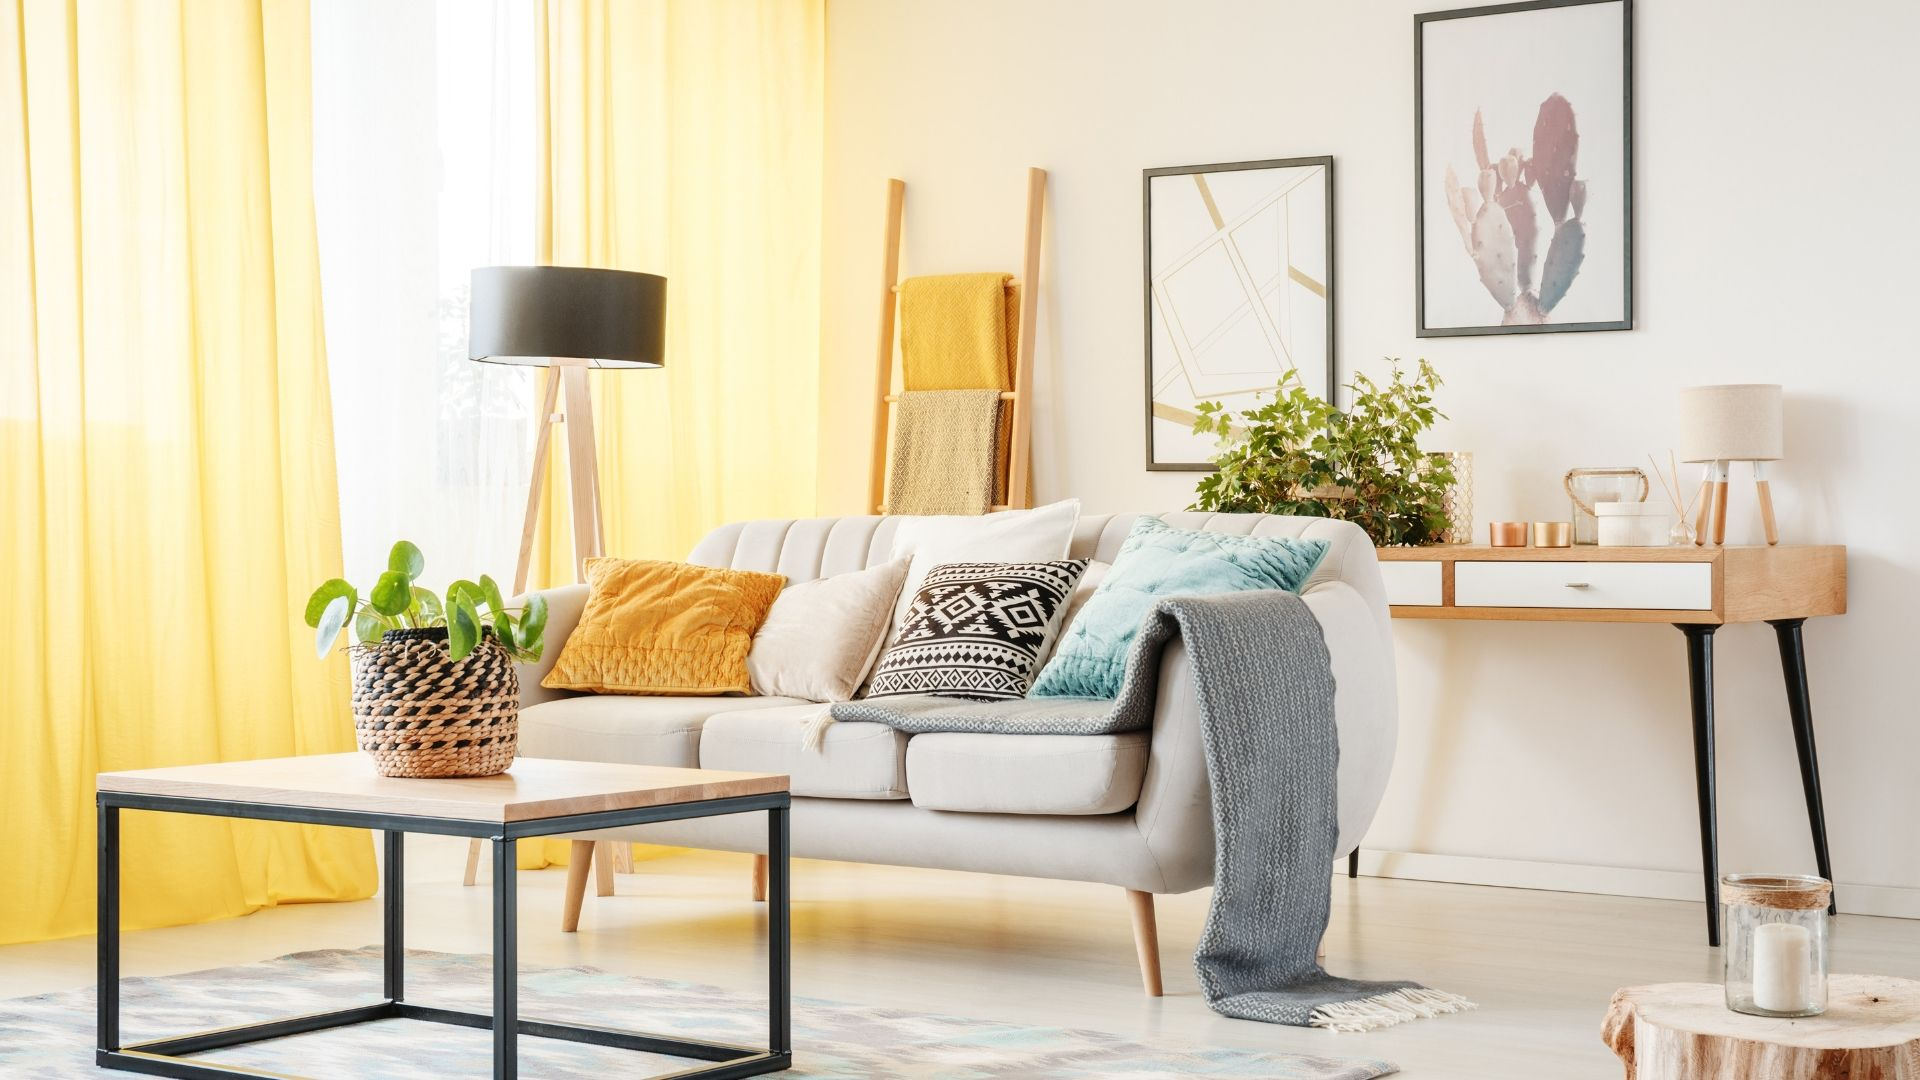 20 Easy Home Improvement Ideas and Tips